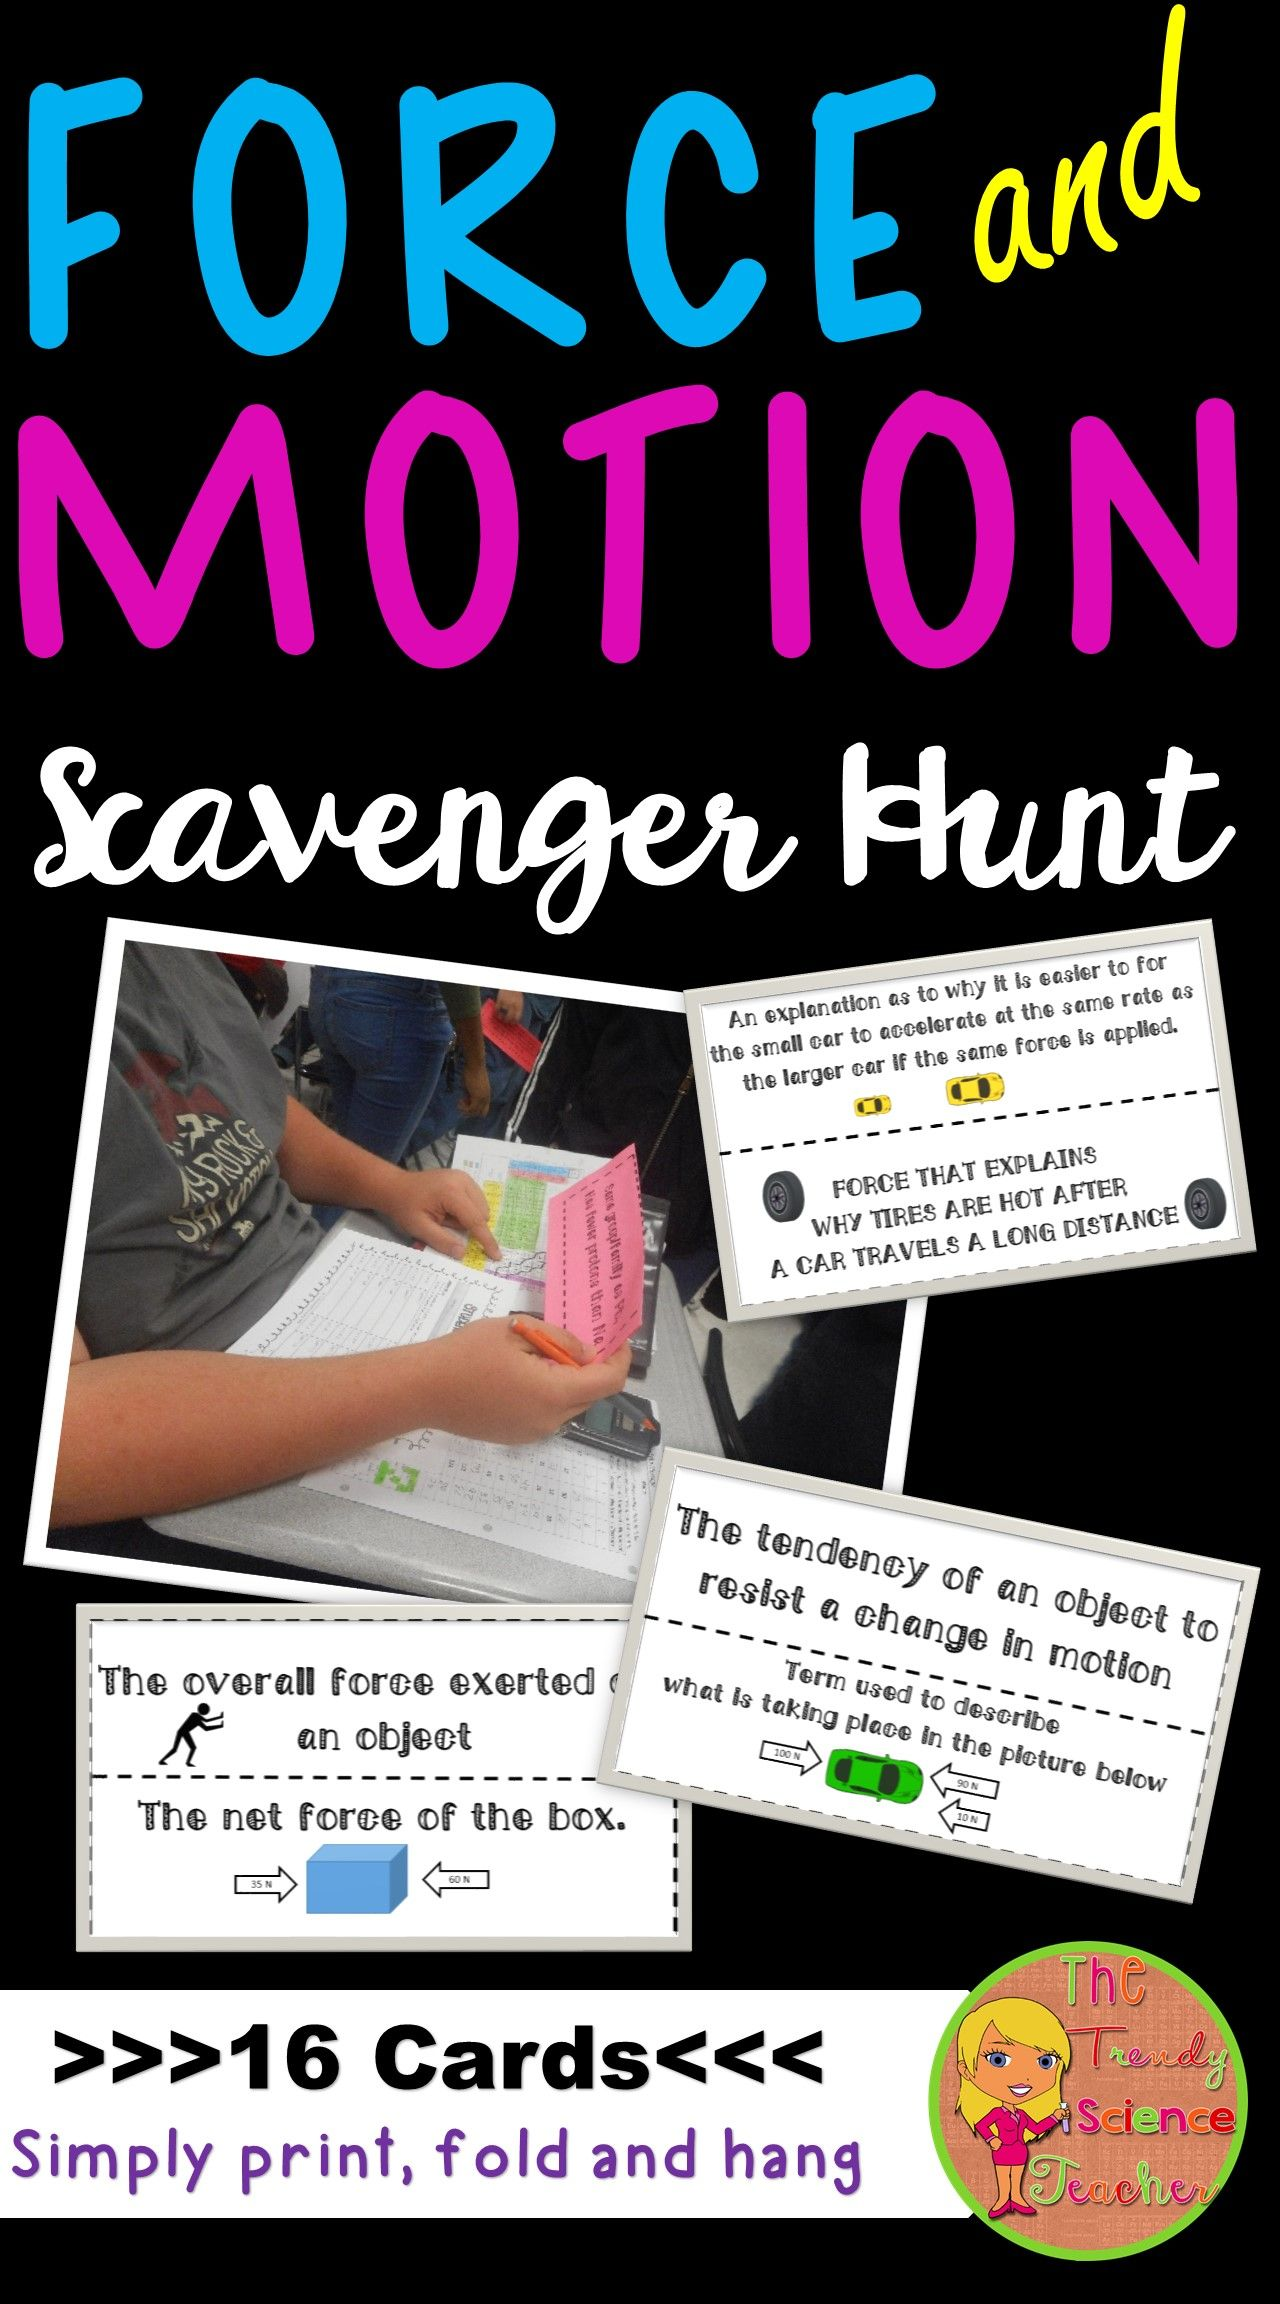 Force Amp Motion Scavenger Hunt Activity With Images